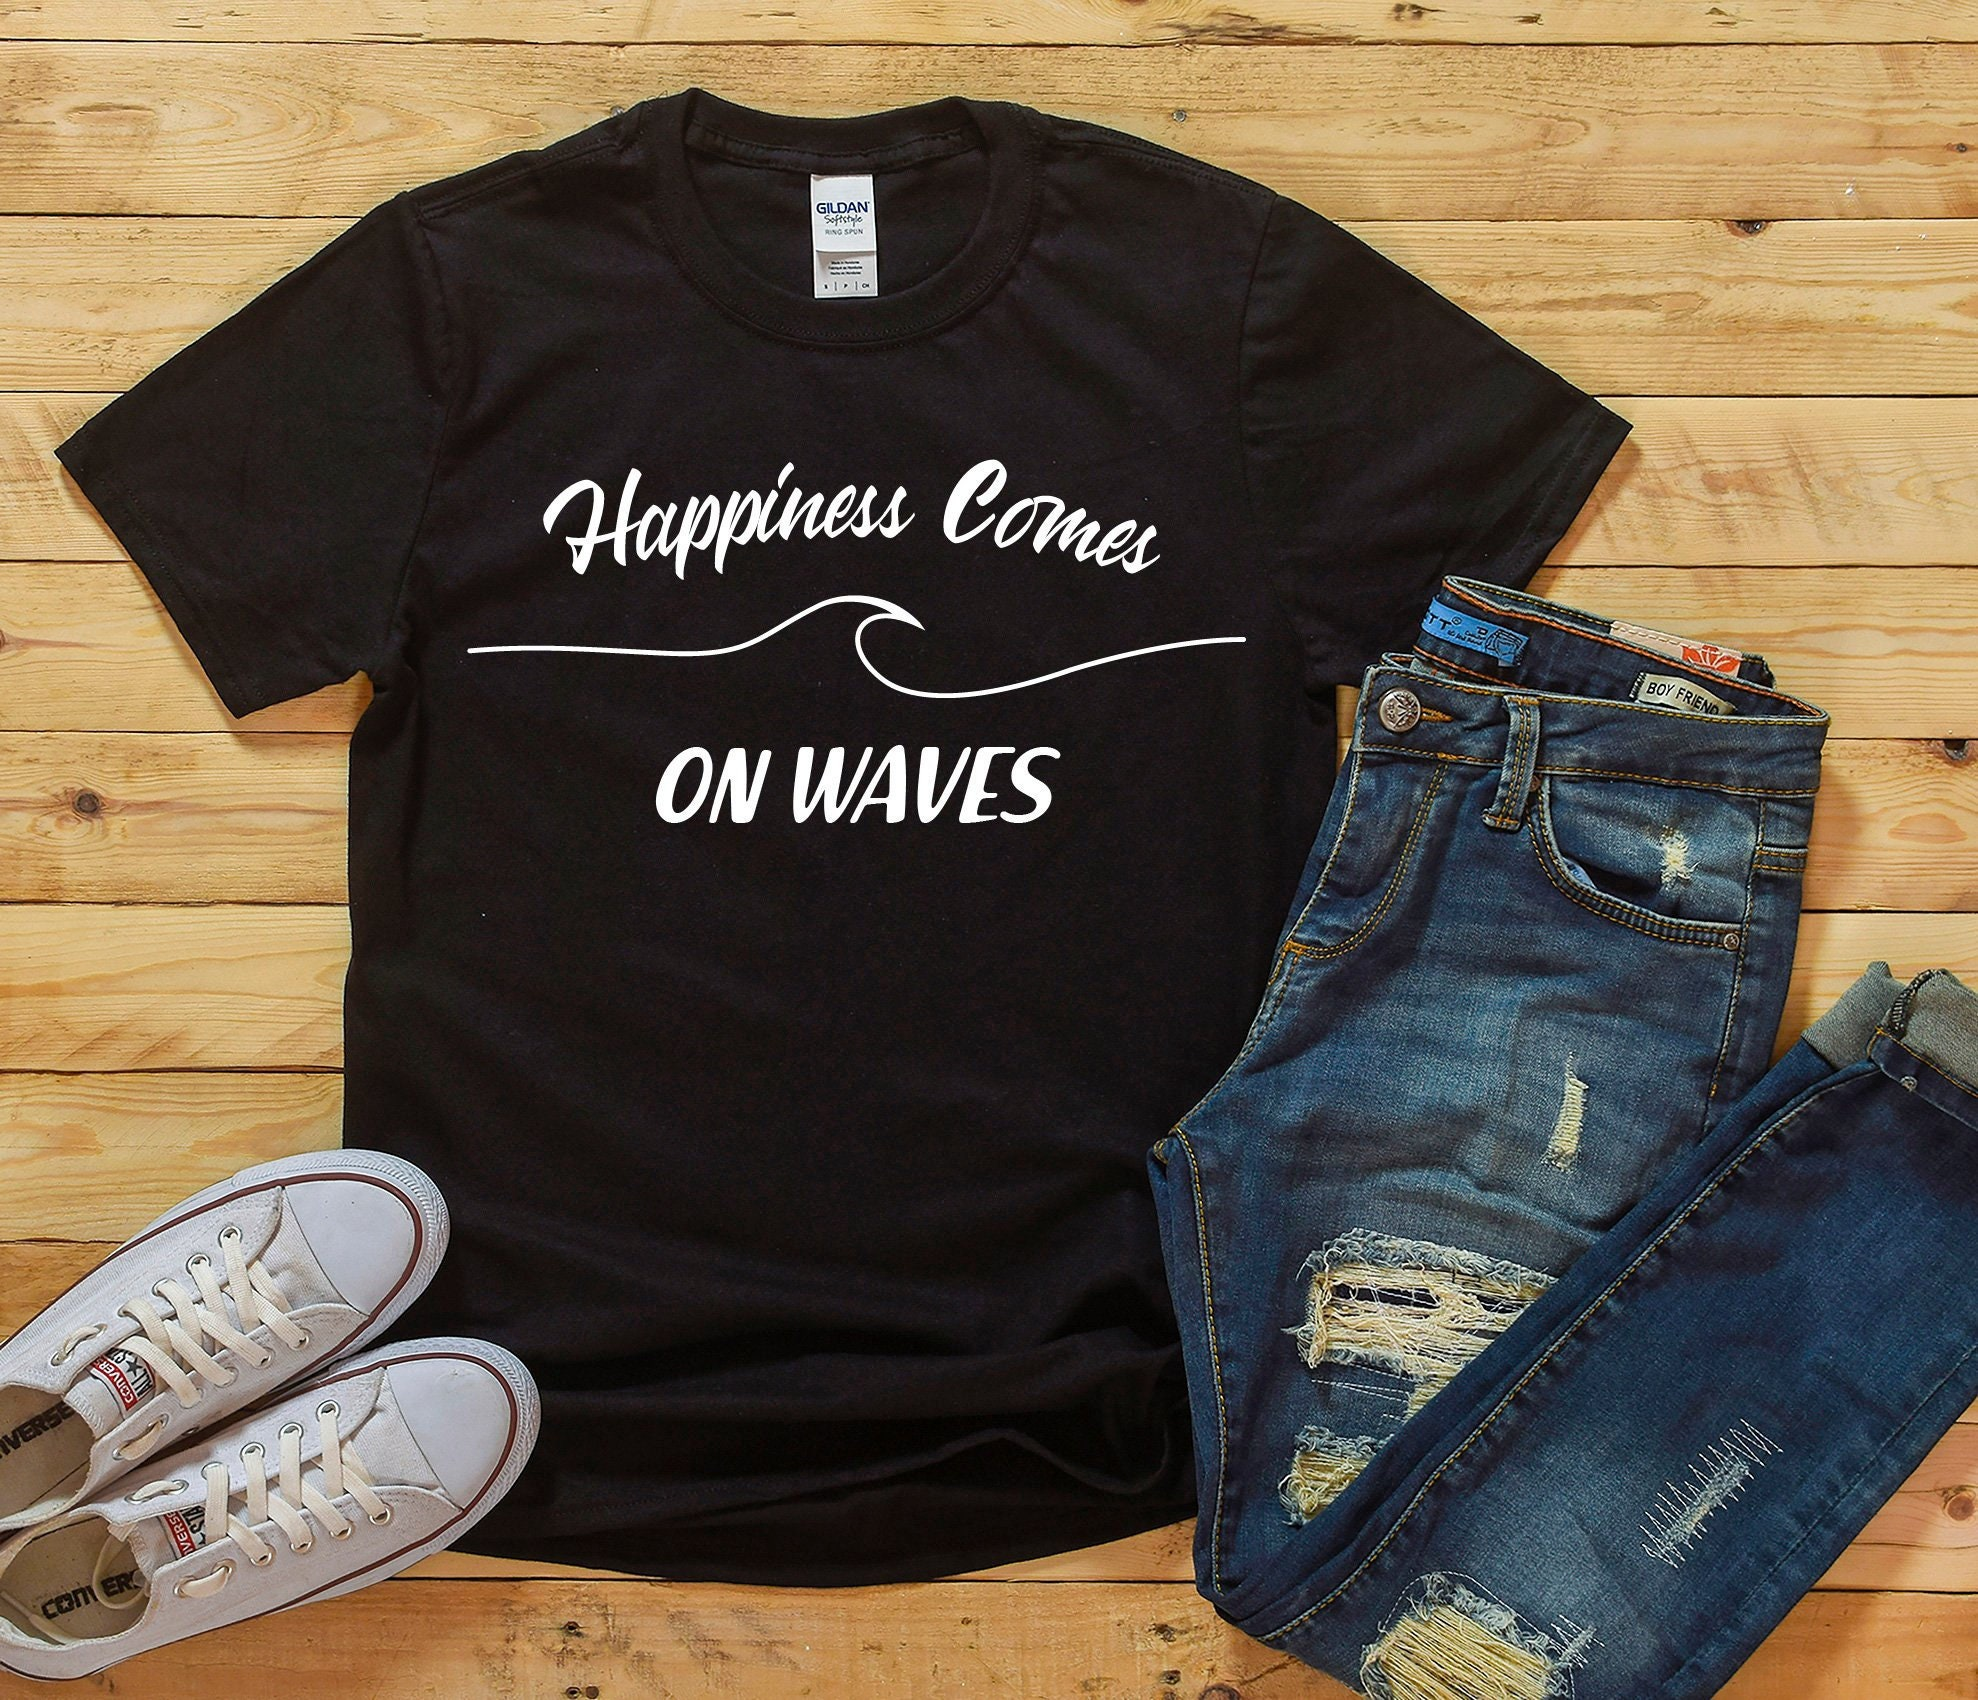 742927cba86 Surfer Happiness Comes On Waves Short-Sleeve Unisex T-Shirt